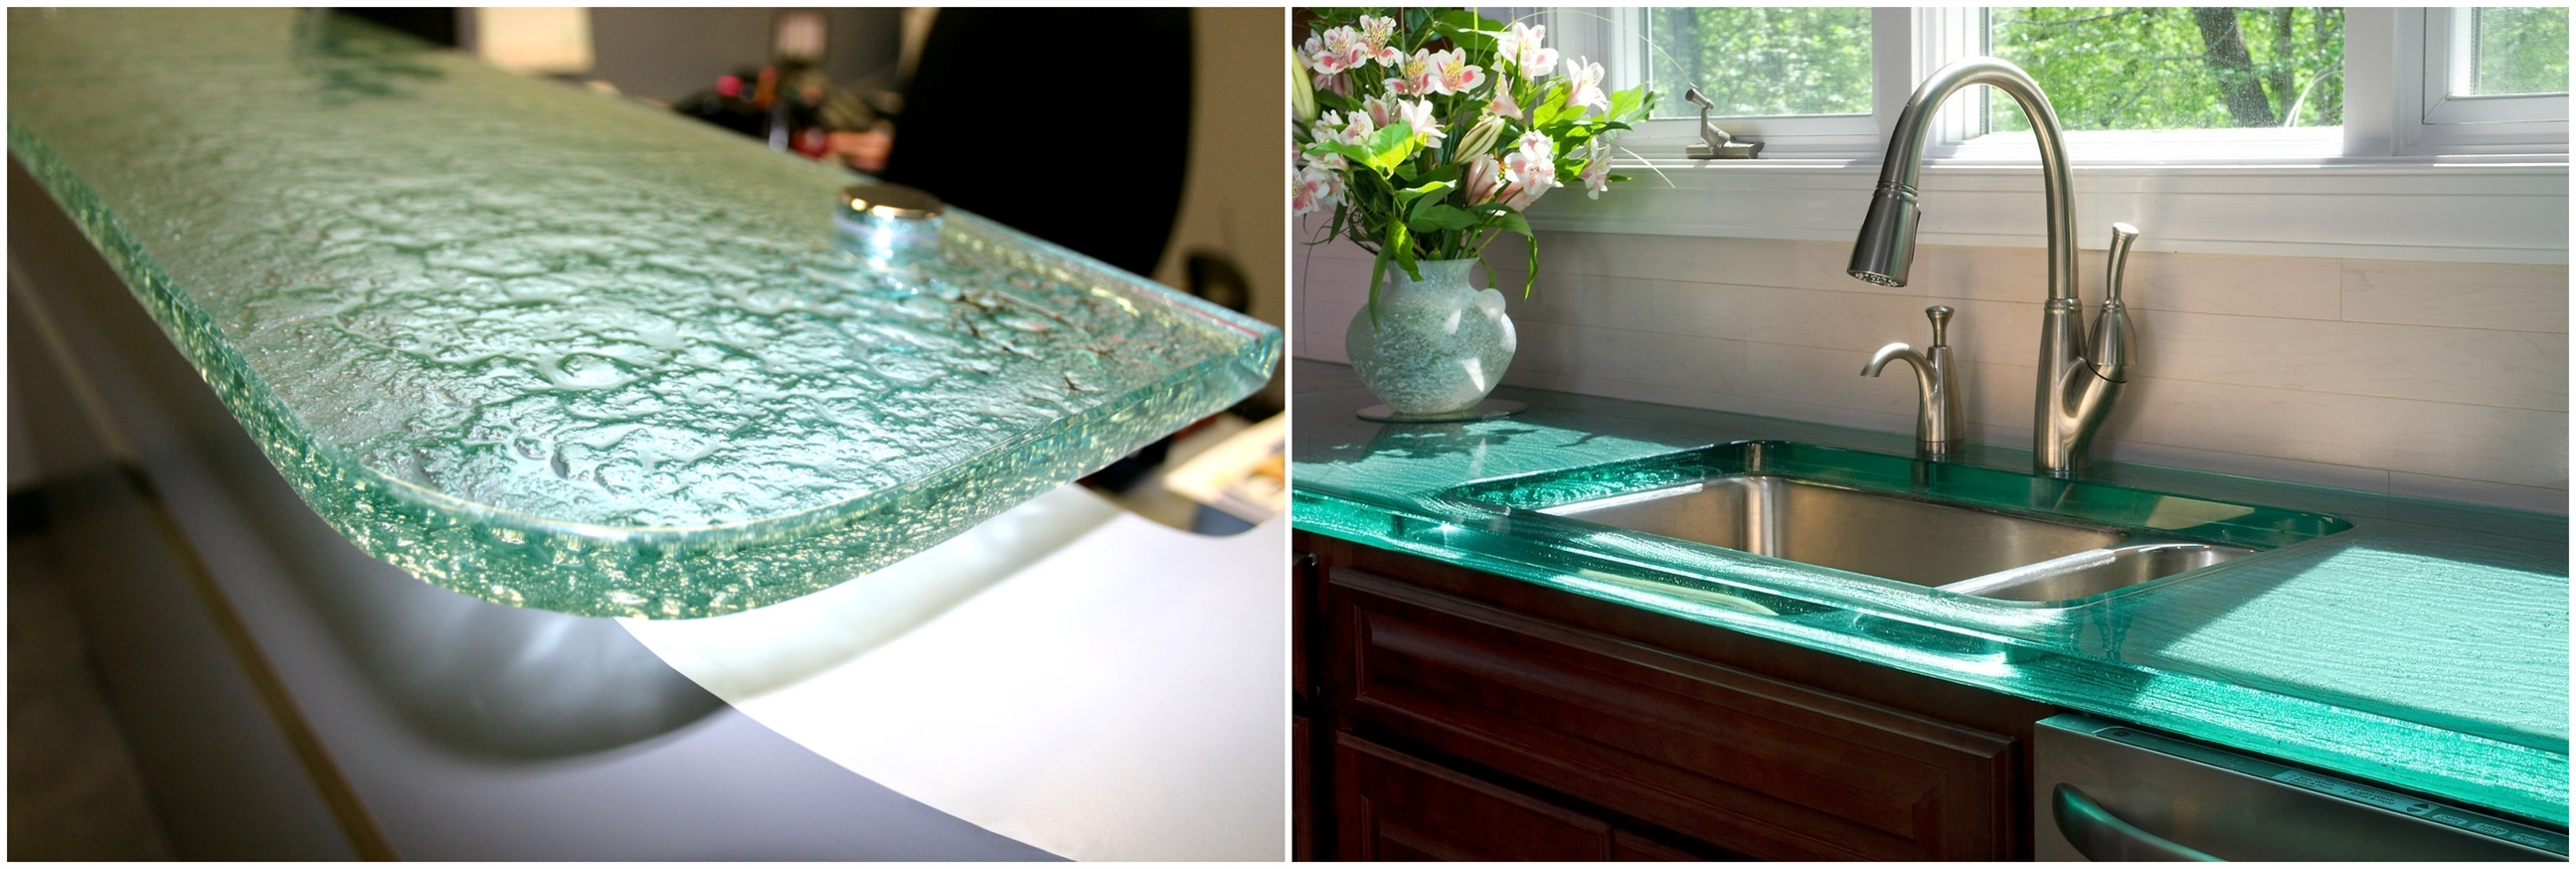 Glass Countertops Hongjia Arvhitectural Glass Manufacturer